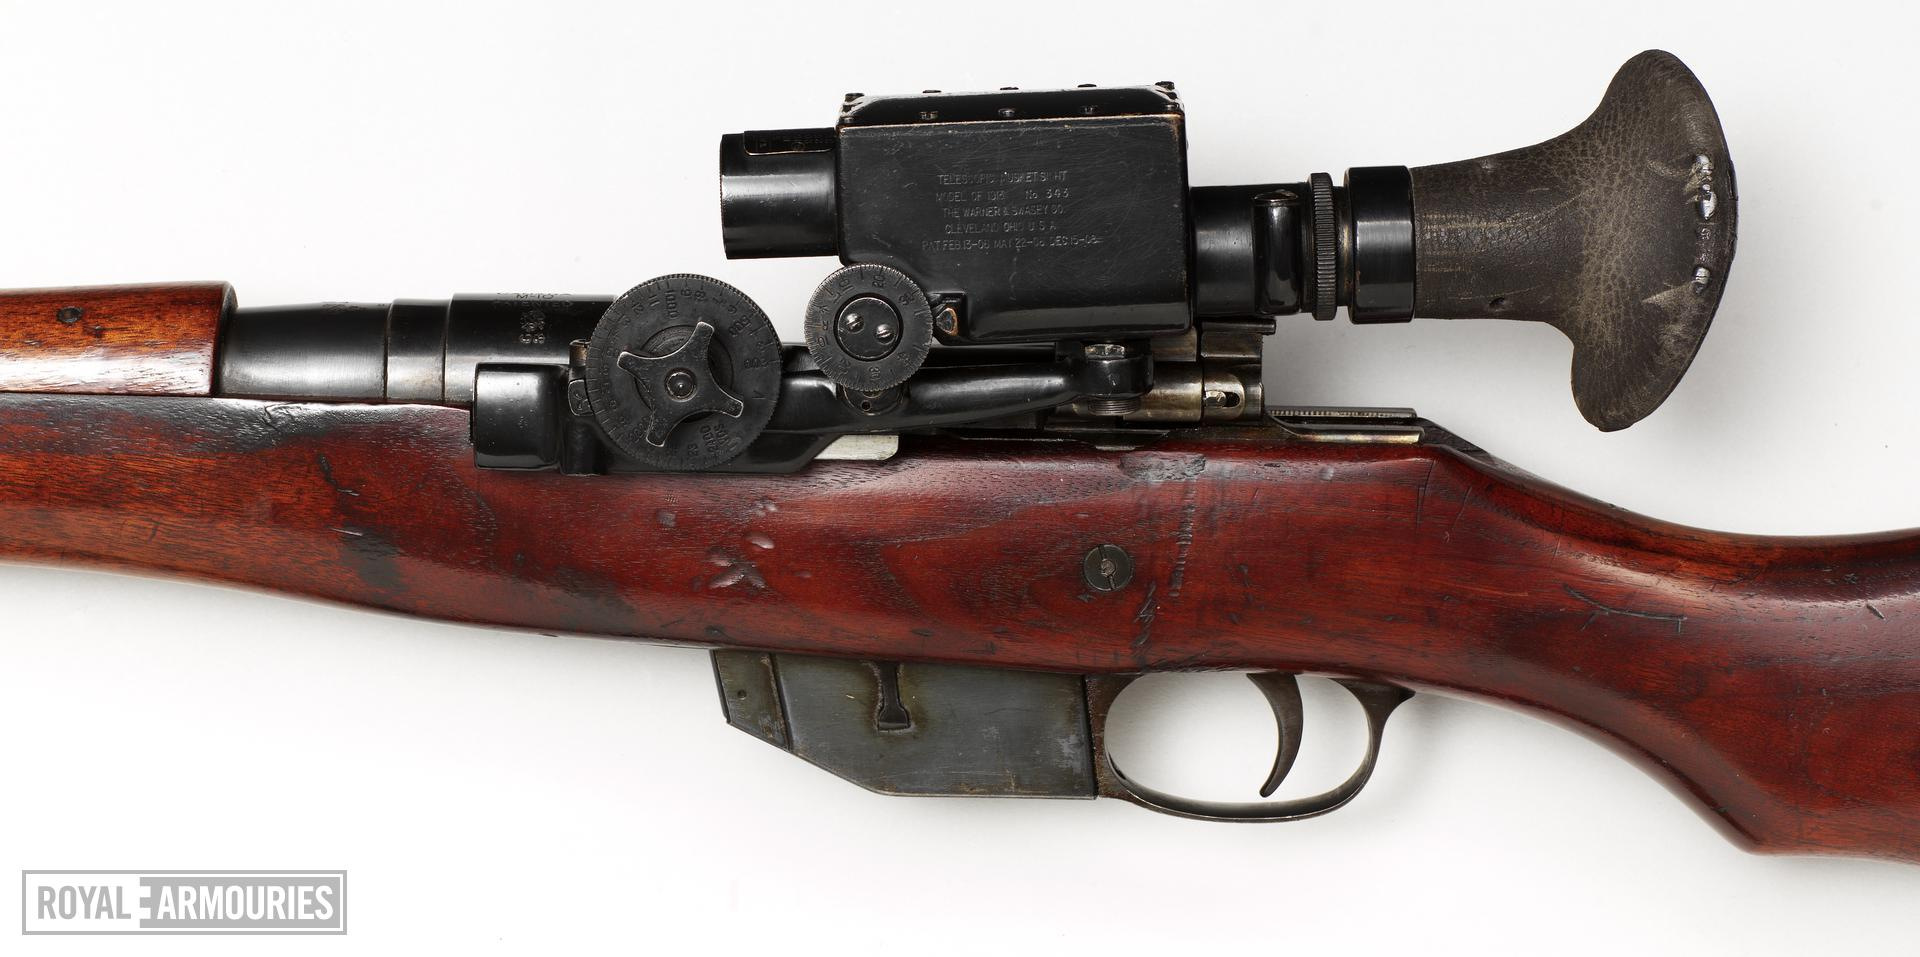 Centrefire bolt-action rifle - Ross Mark III with Warner and Swasey scope